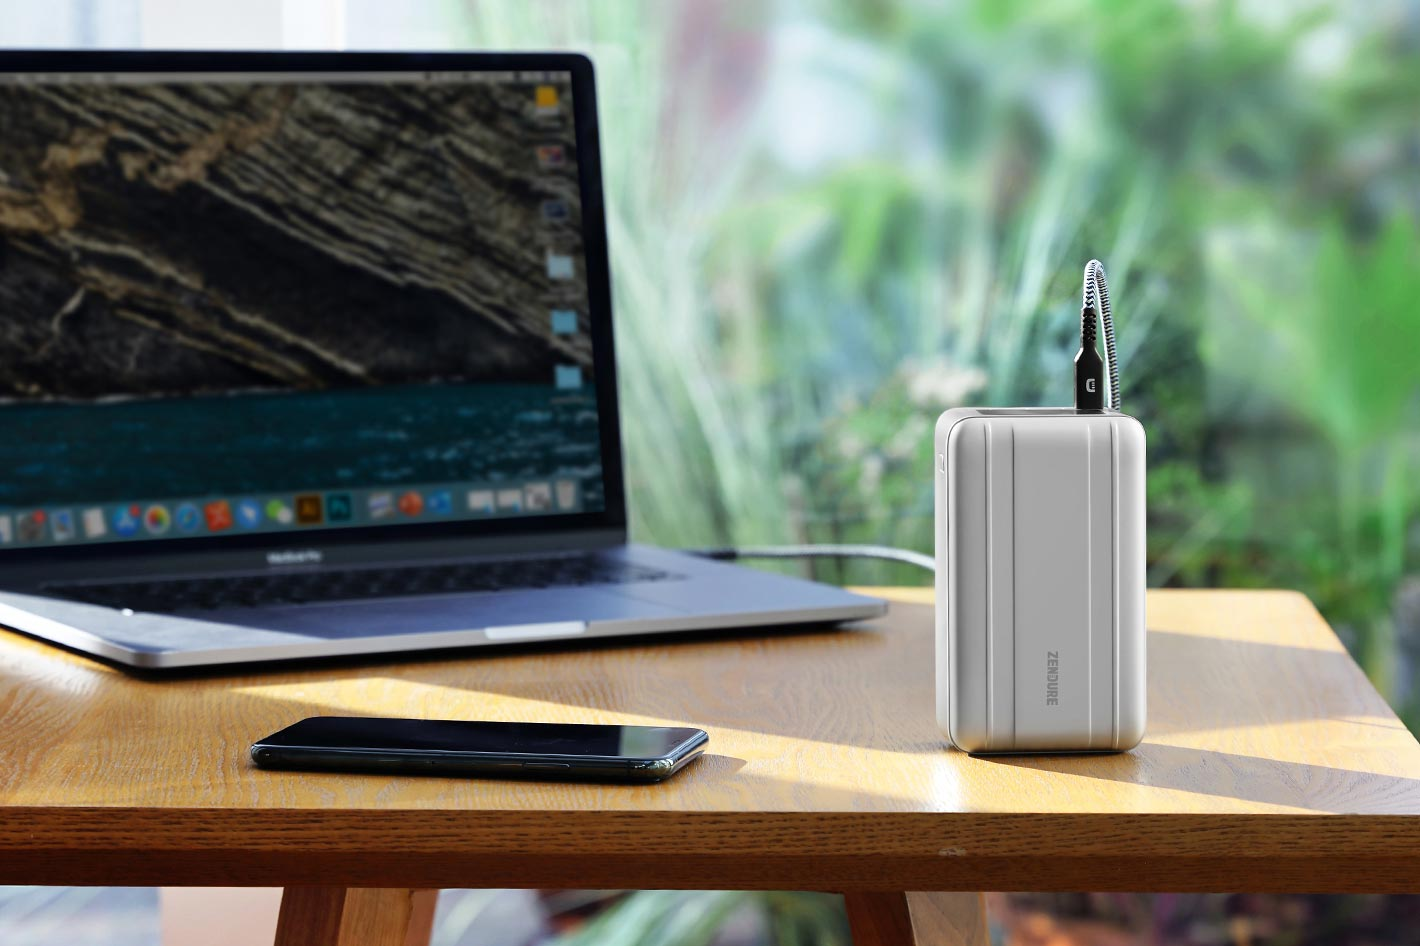 SuperTank Pro can charge two MacBooks and two smartphones at once